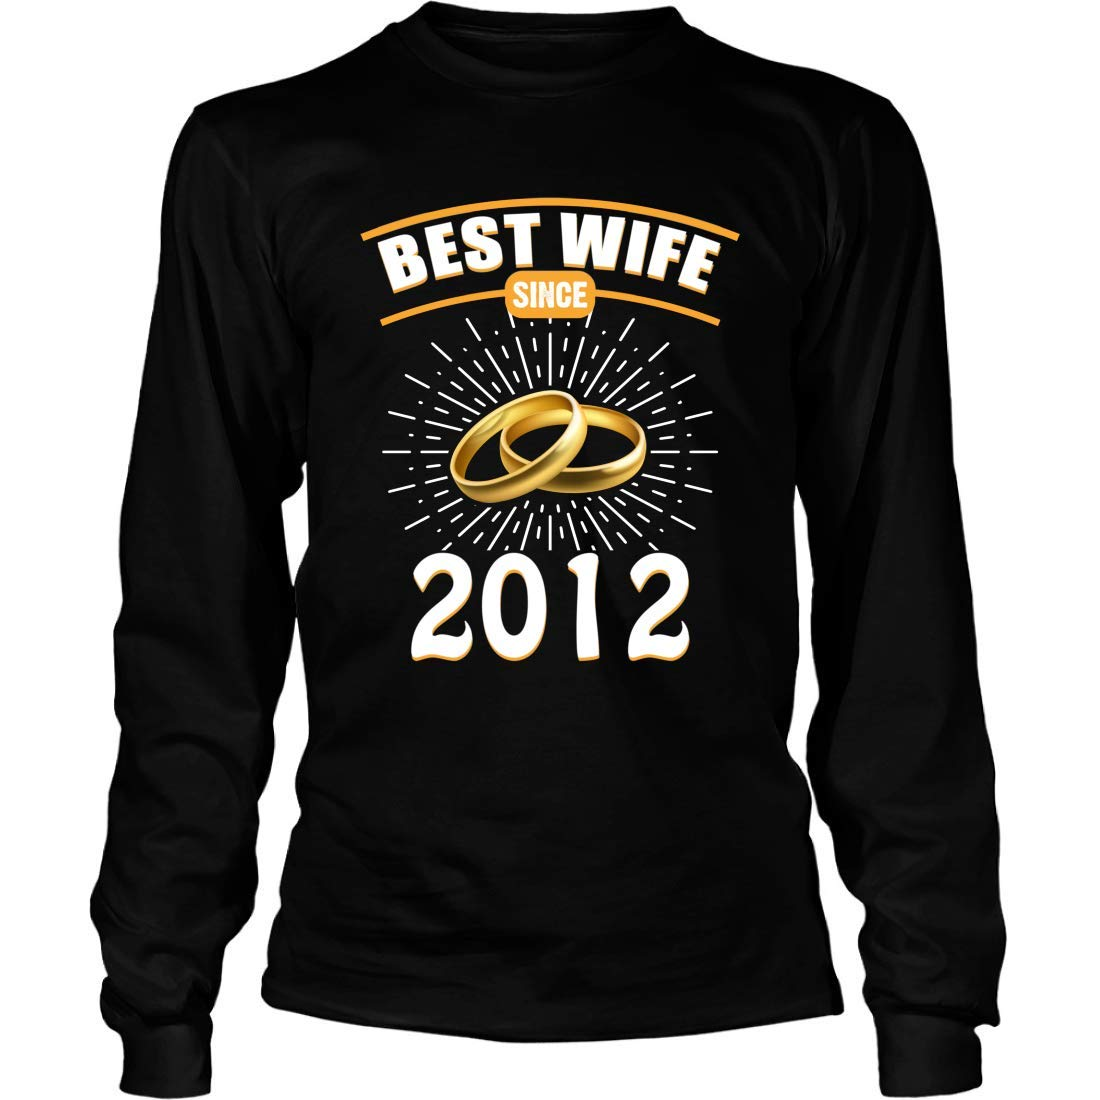 Shirts Gifts for Wedding Anniversary 21 Mishozi Best Wife Since 1997 Long Sleeve T-Shirt Unisex